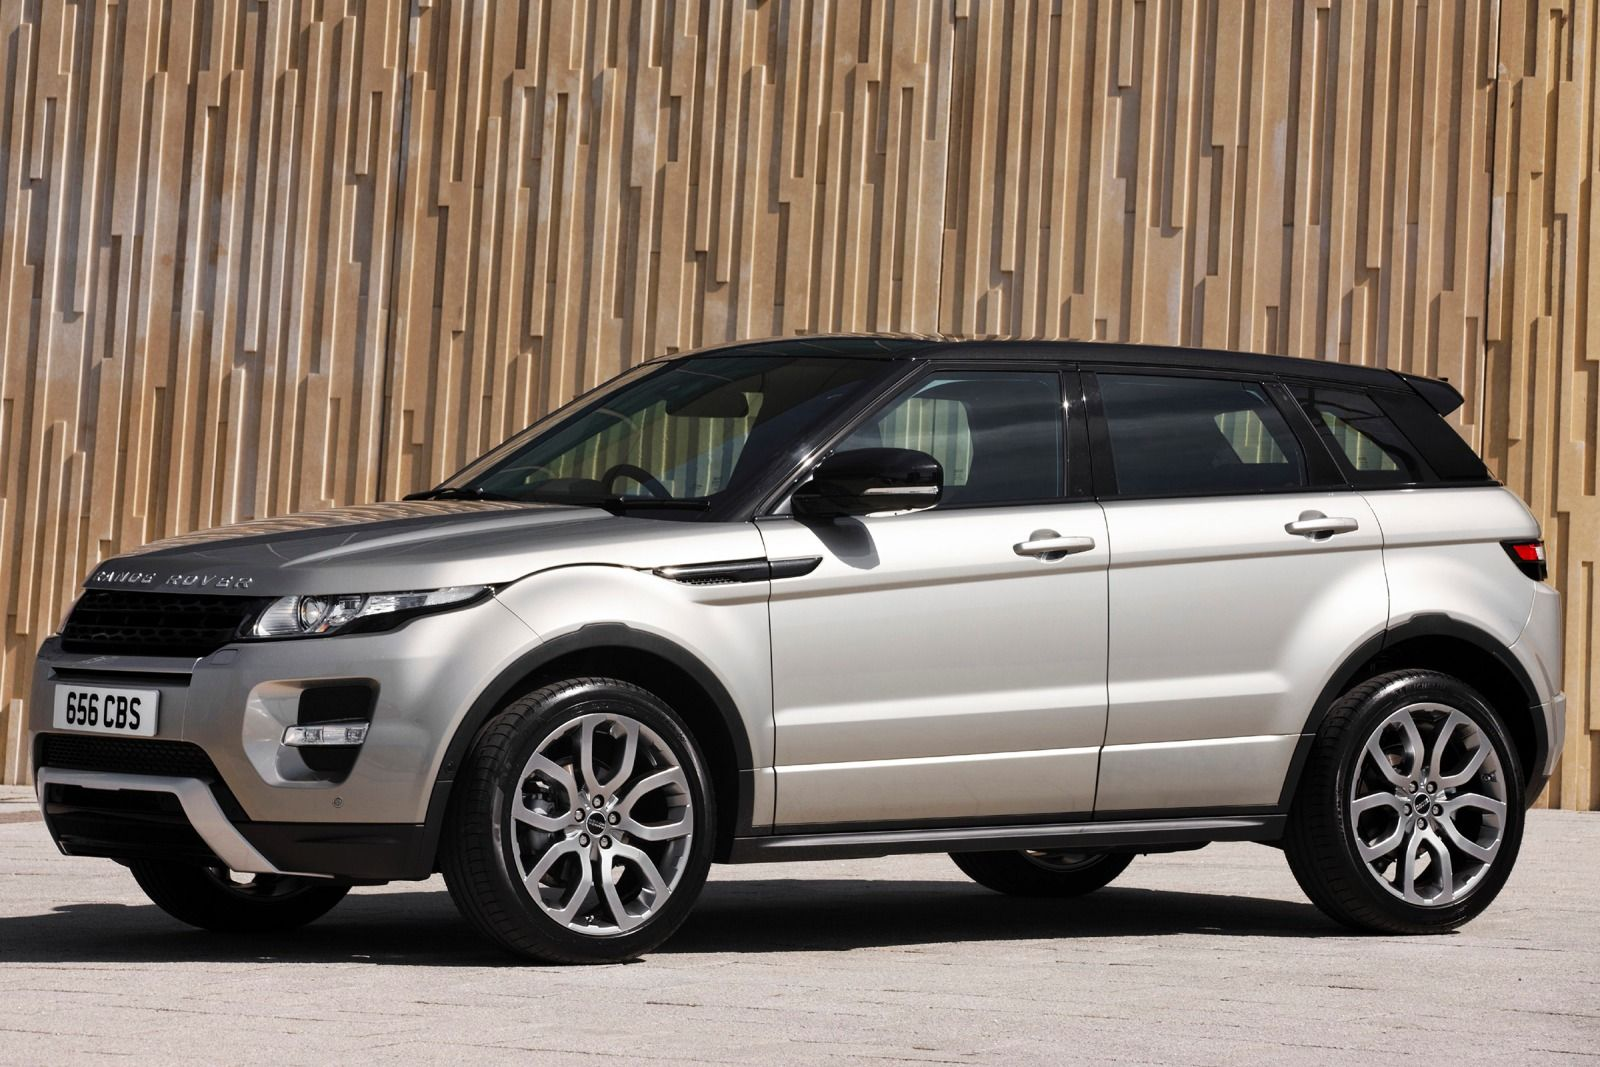 sale evoque rover hyundai land plus pure drummondville for at range used landrover